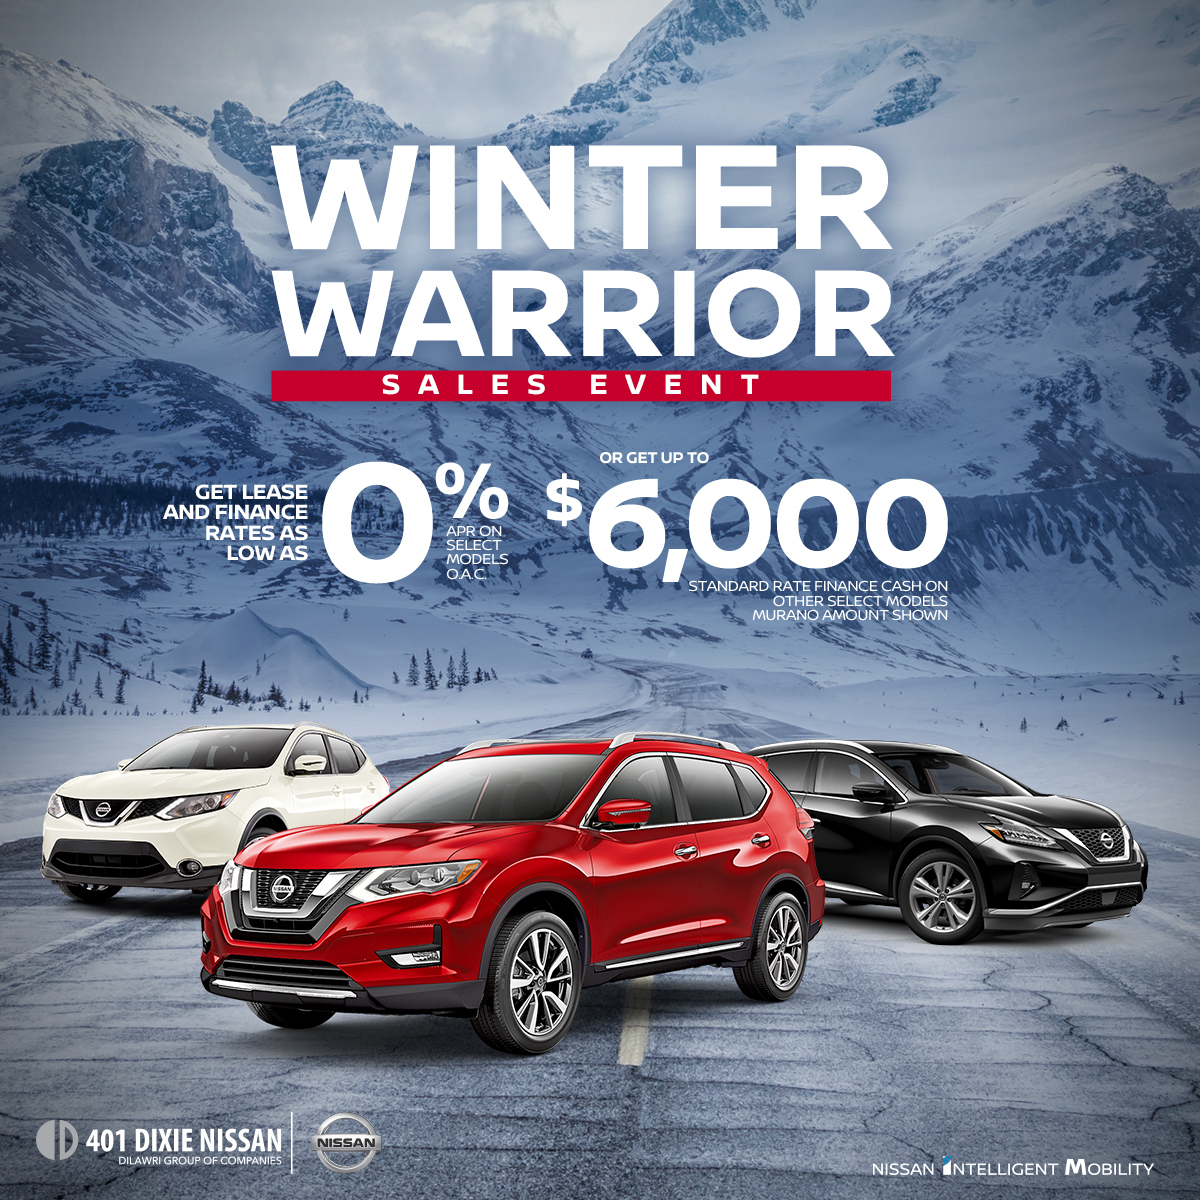 Specials offers to take on all conditions. Take winter by storm with lease or finance rates from 0% or get up to $6,000 Standard Rate Finance Cash on select models. Visit -> https://t.co/EvymQ59gUV https://t.co/F7dattCwC4